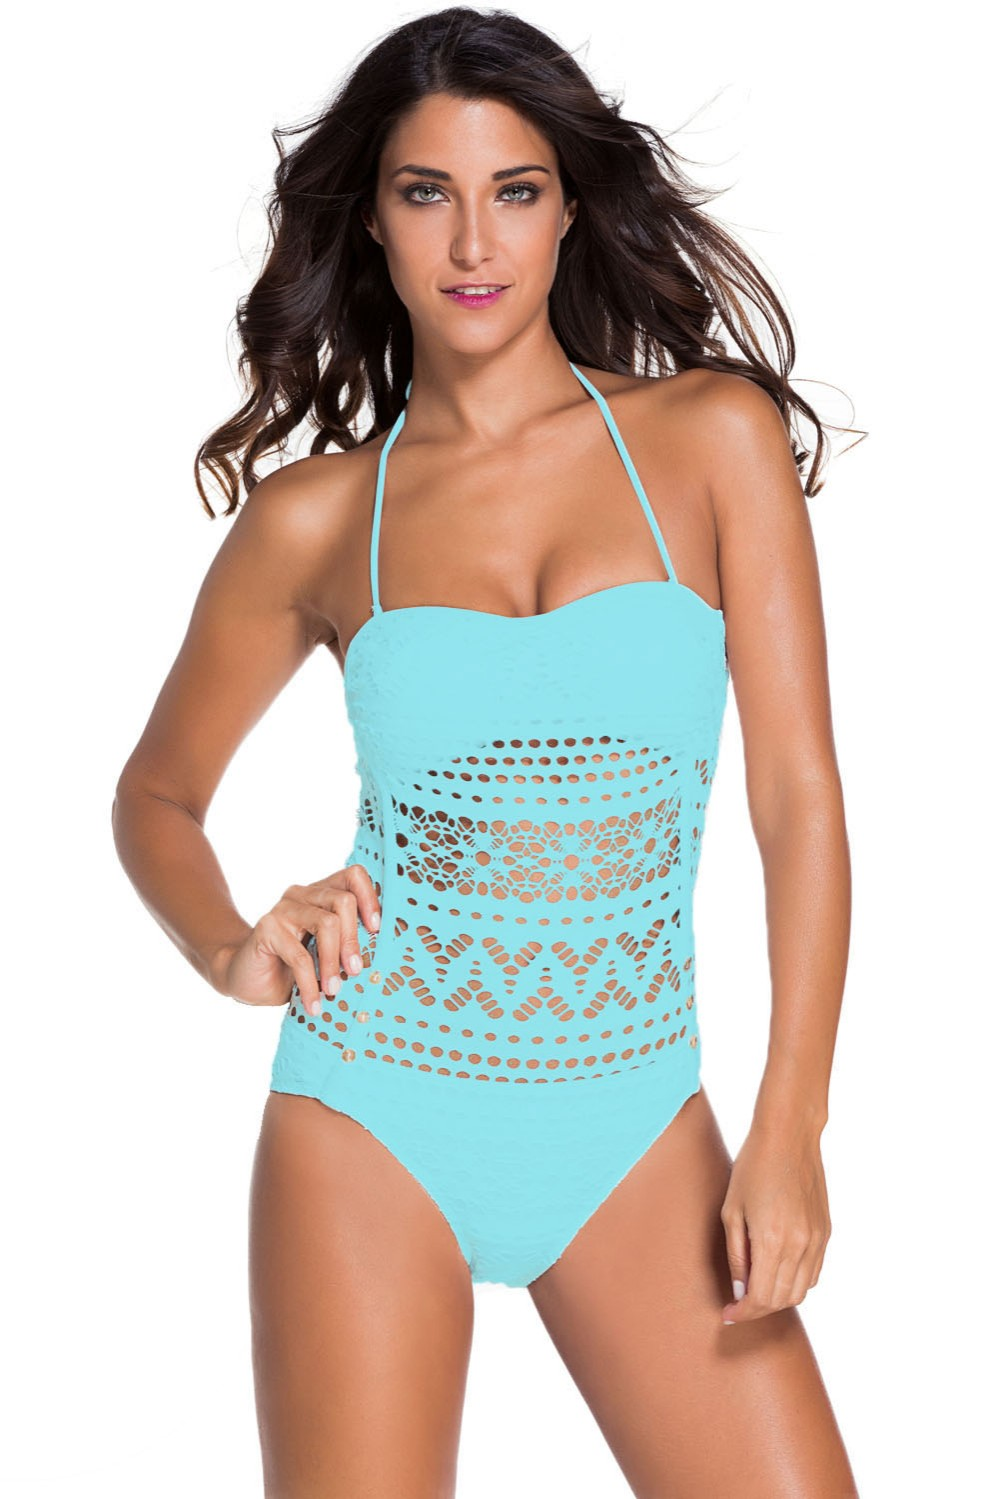 Royal Blue Lace Hollow Out Padded Monokini Swimsuit